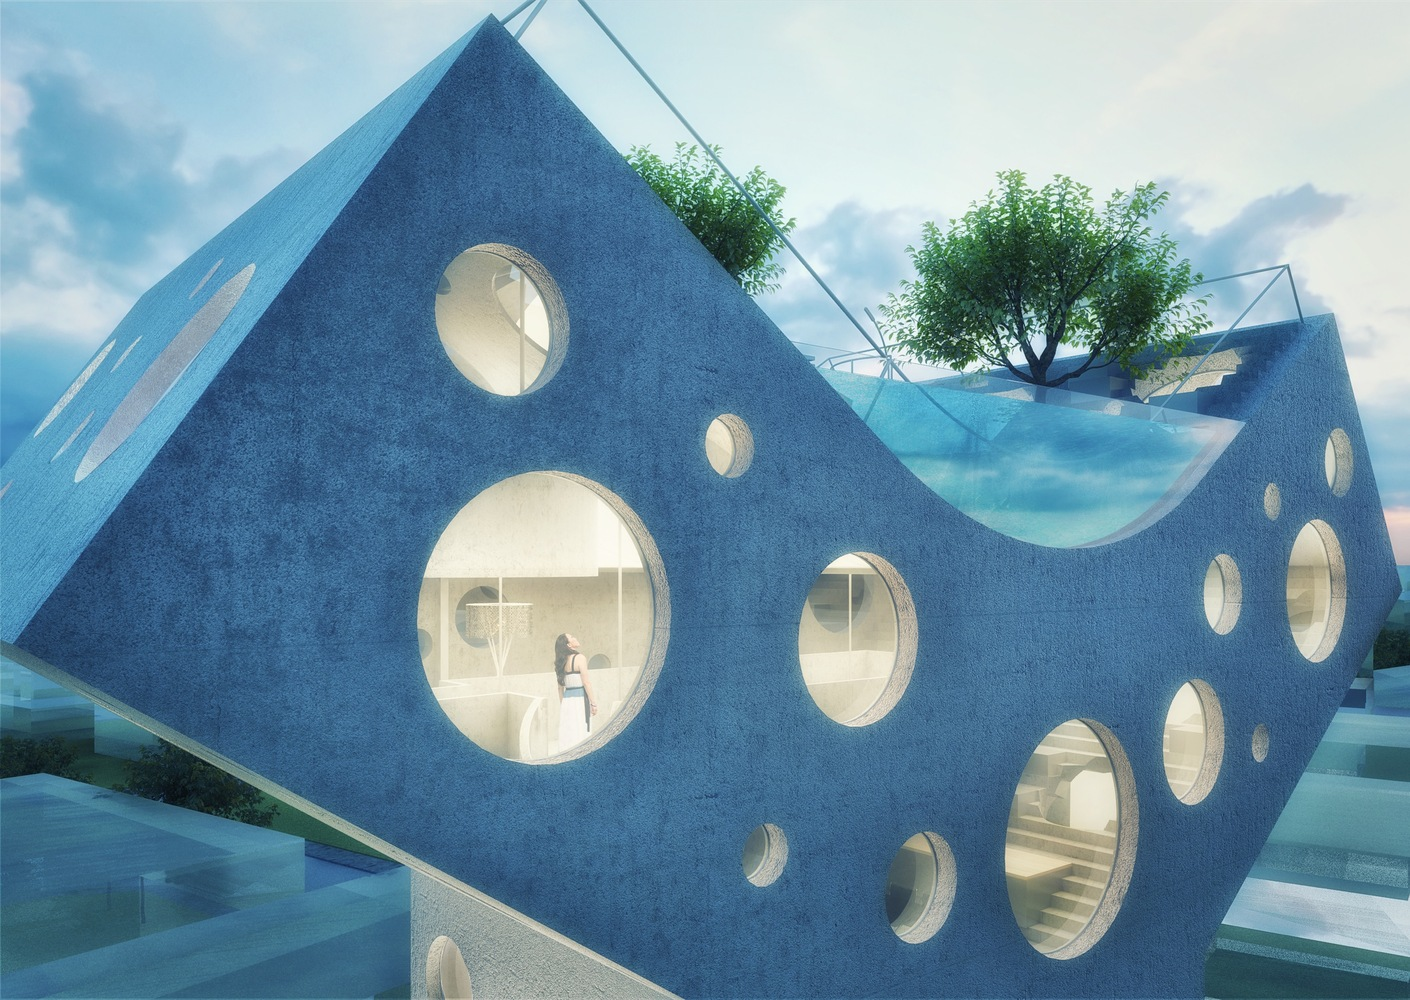 MVRDV have designed a Y-shaped house with a rooftop pool for Taiwan 36